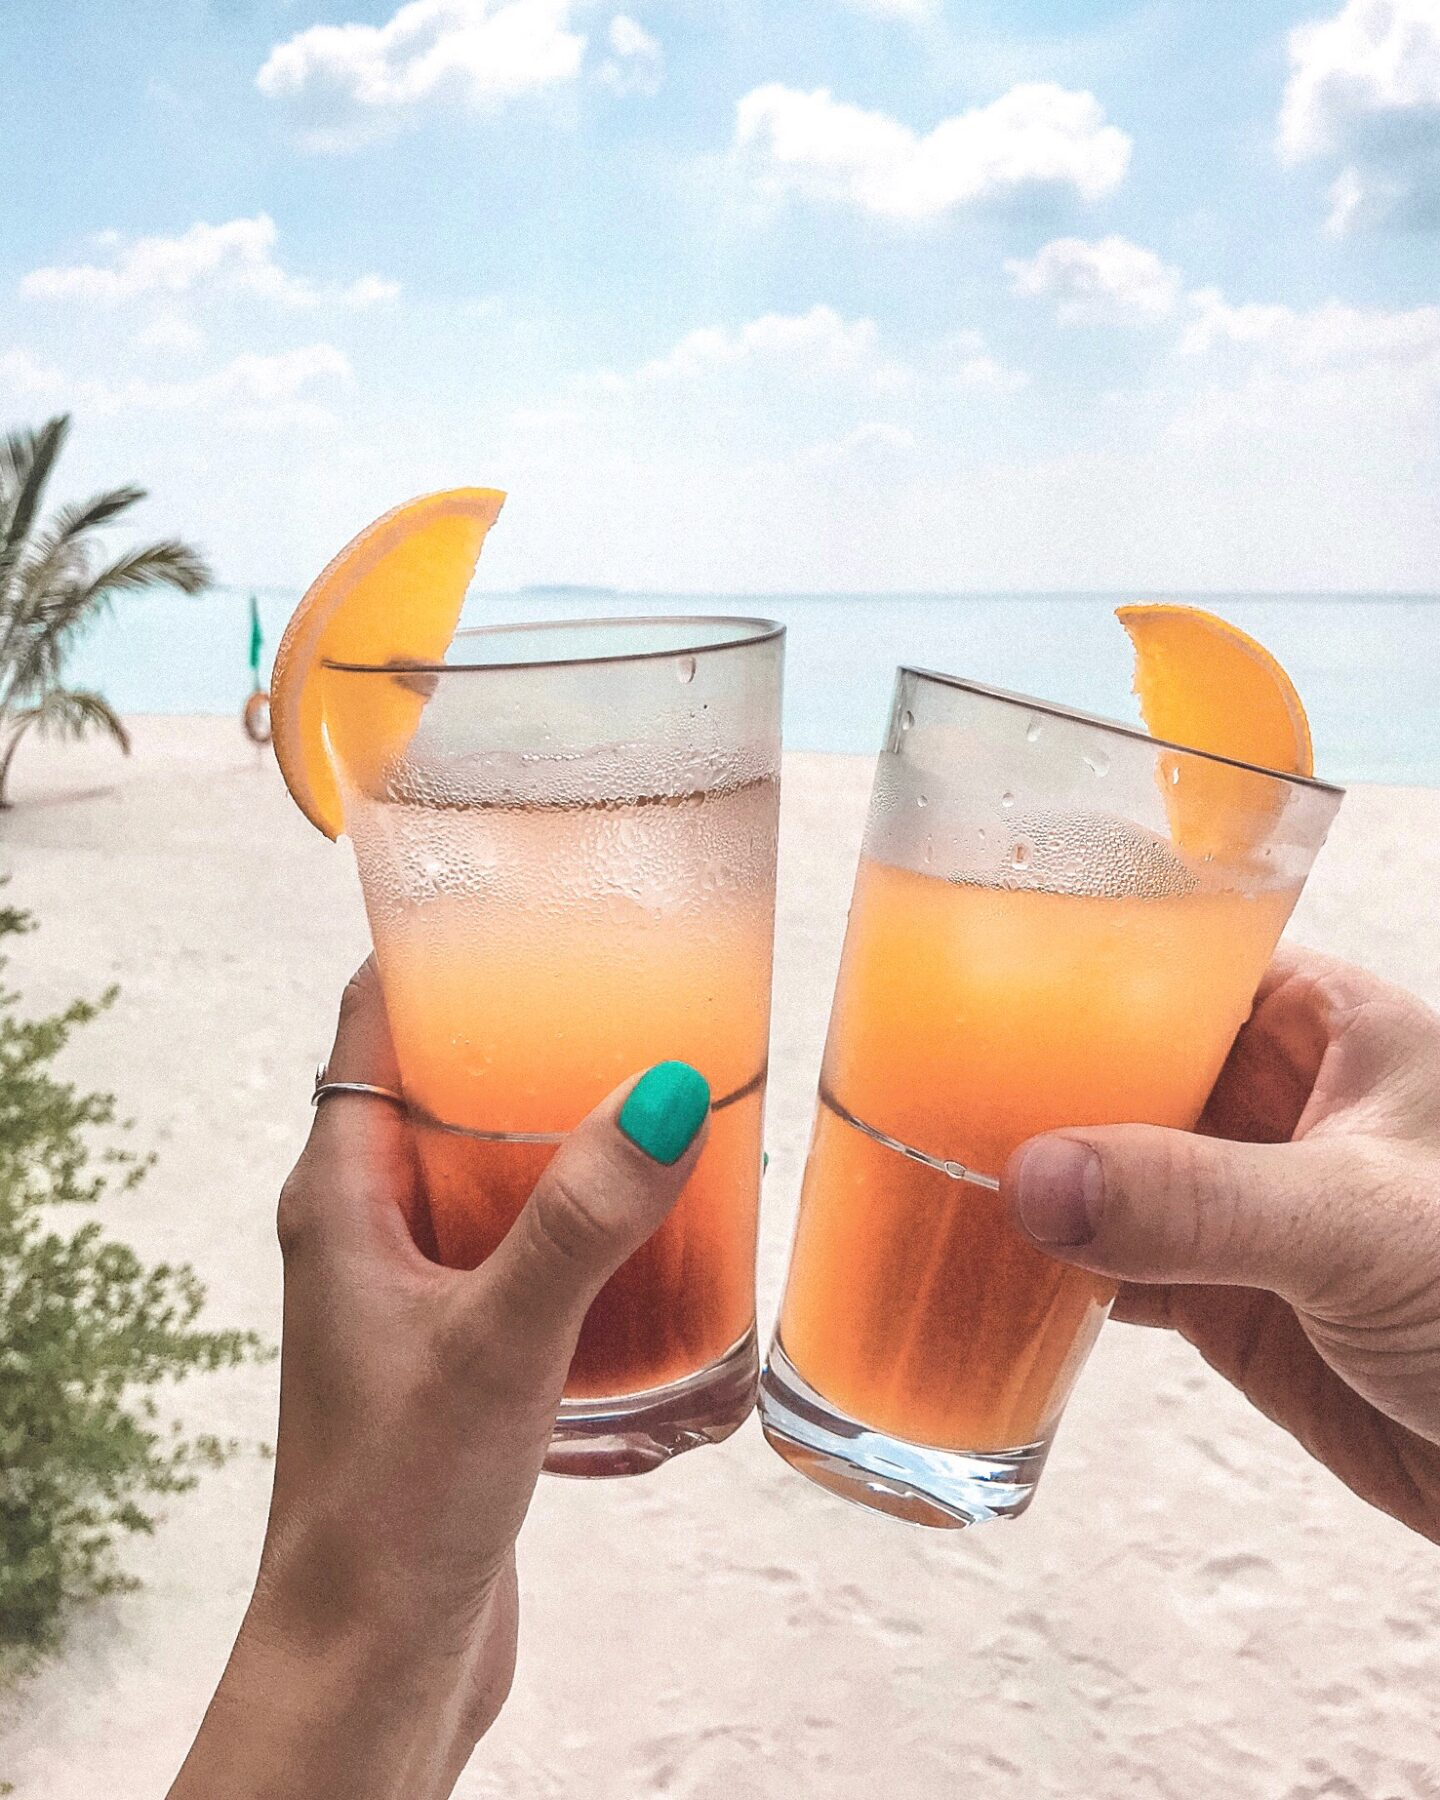 Enjoy the best Cocktails at the beach in the Maldives.